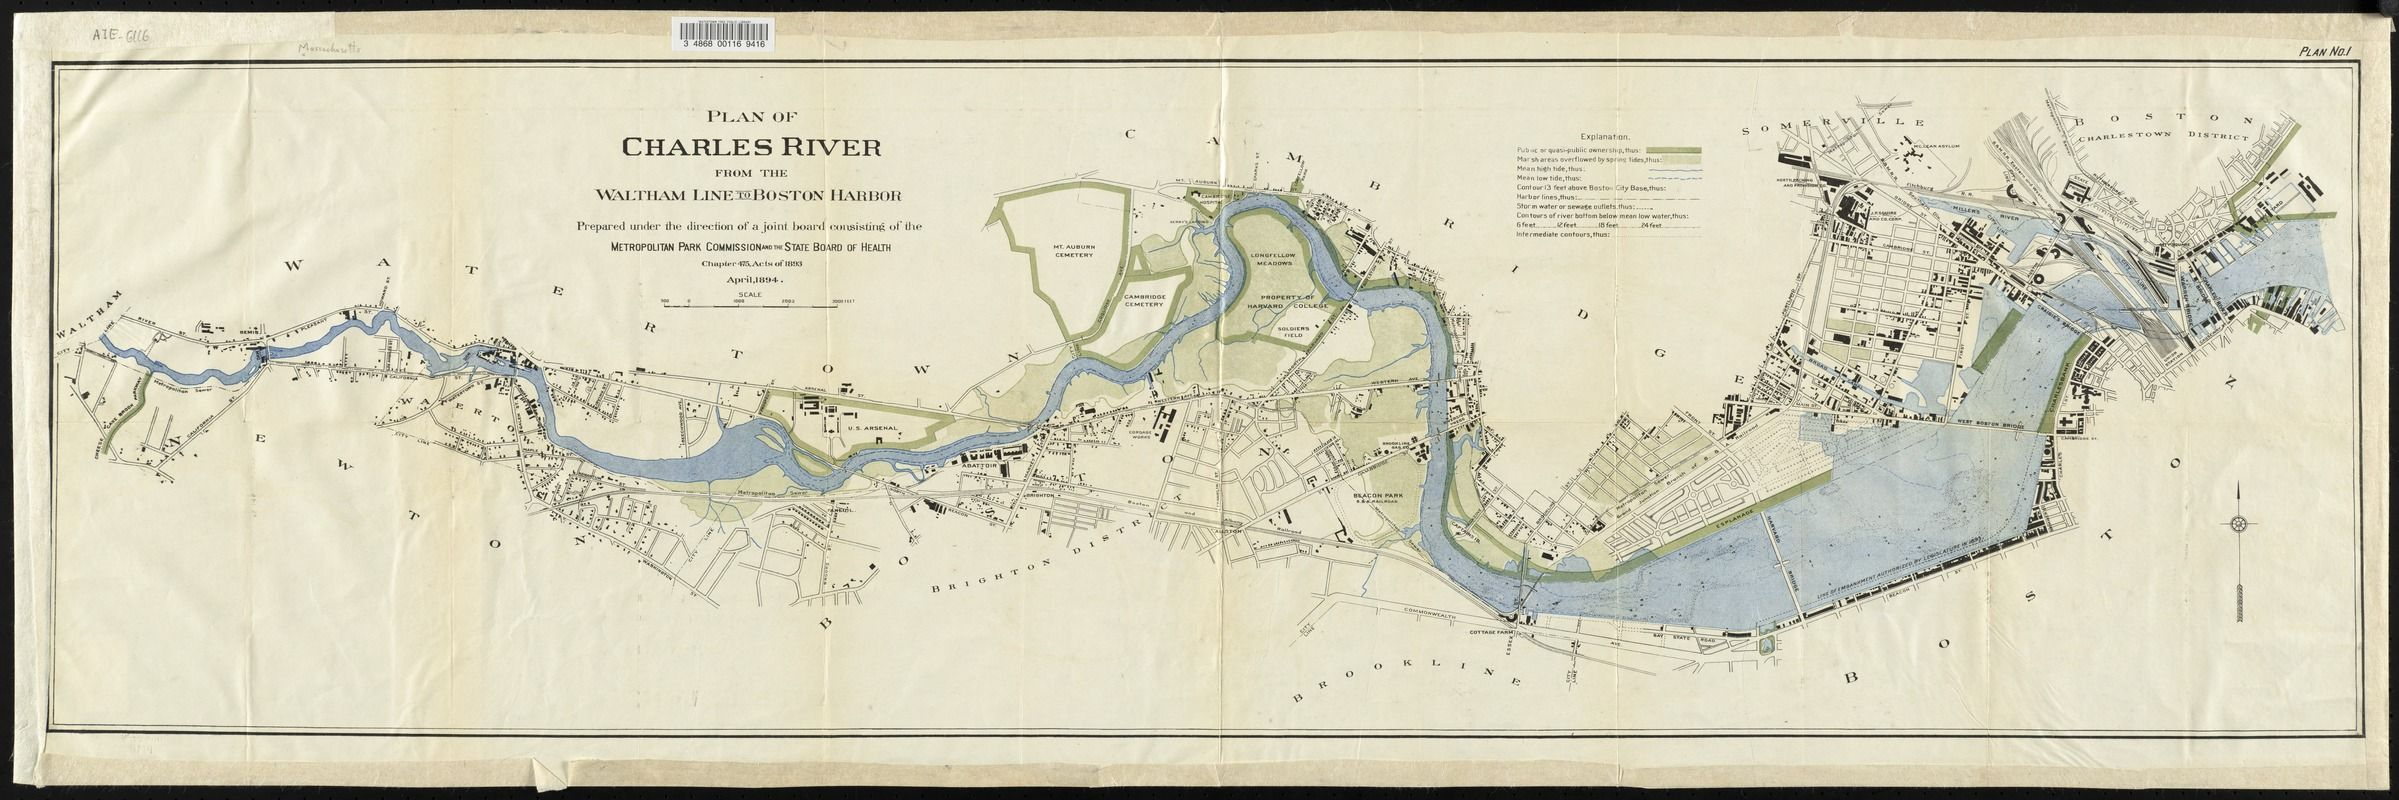 Plan of Charles River from the Waltham line to Boston Harbor | maps Charles River Map on